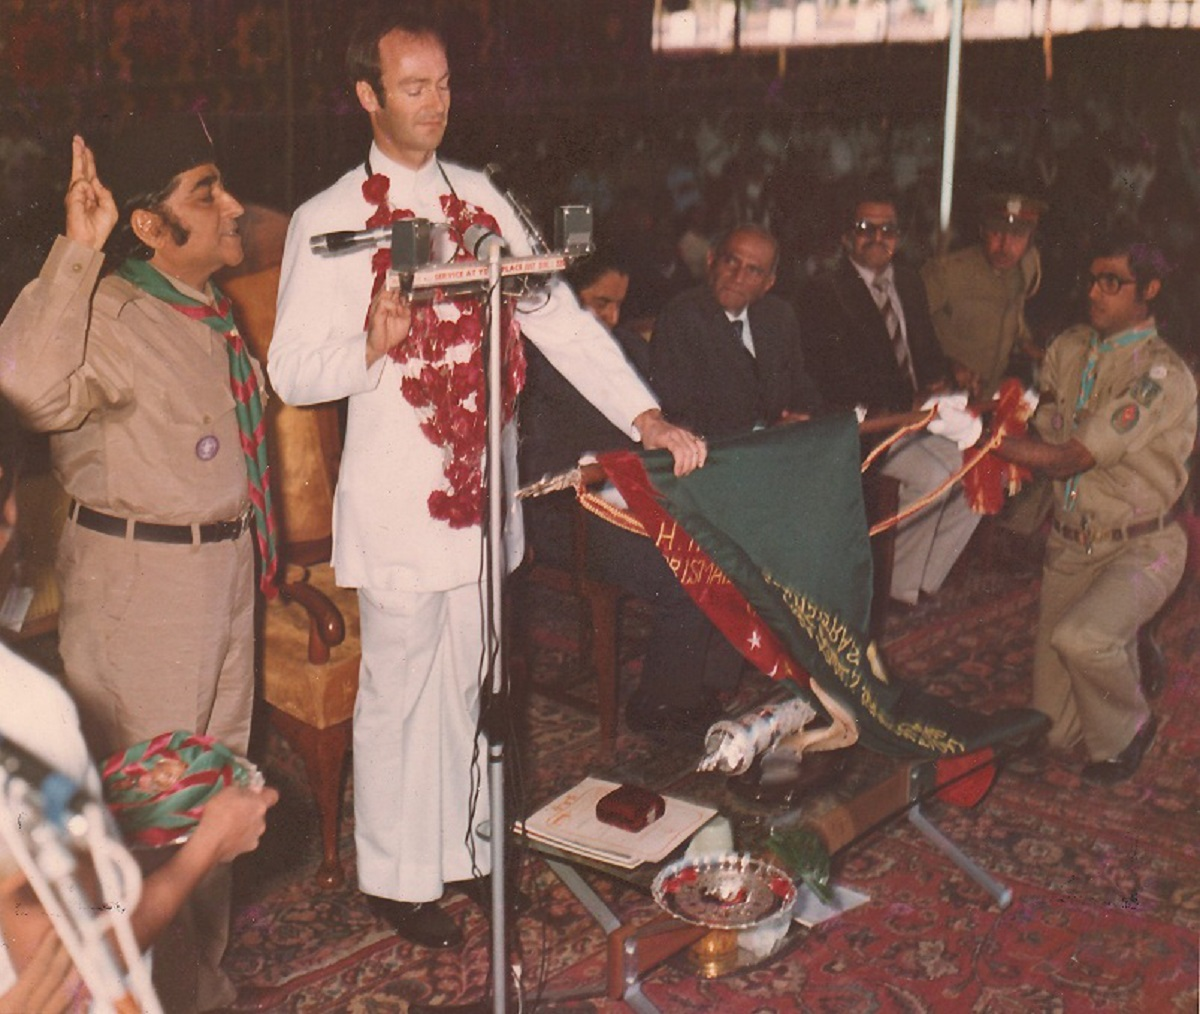 Vazir Sherali Alidina, President of the Scouting Association, left, was in charge of conducting the investiture ceremony, which began with Prince Amyn Mohamed Aga Khan reciting the Scout Promise with his left hand on the flag of the Ismaili Scouts Association and his right hand raised in half salute. The President then wrapped the Scout Scarf on Prince Amyn Mohamed's nape, and pinned the scout badge on his left pocket completing the task with a left-handed scout hand shake with the Prince; the Prince now officially became the second Chief Scout of the Ismailis, following his late father, Prince Aly Khan, who was the first Chief Scout of the Ismailis. The dignified ceremony was short and lasted fifteen minutes. Photo: Khizar Hayat Collection, Toronto, Canada.